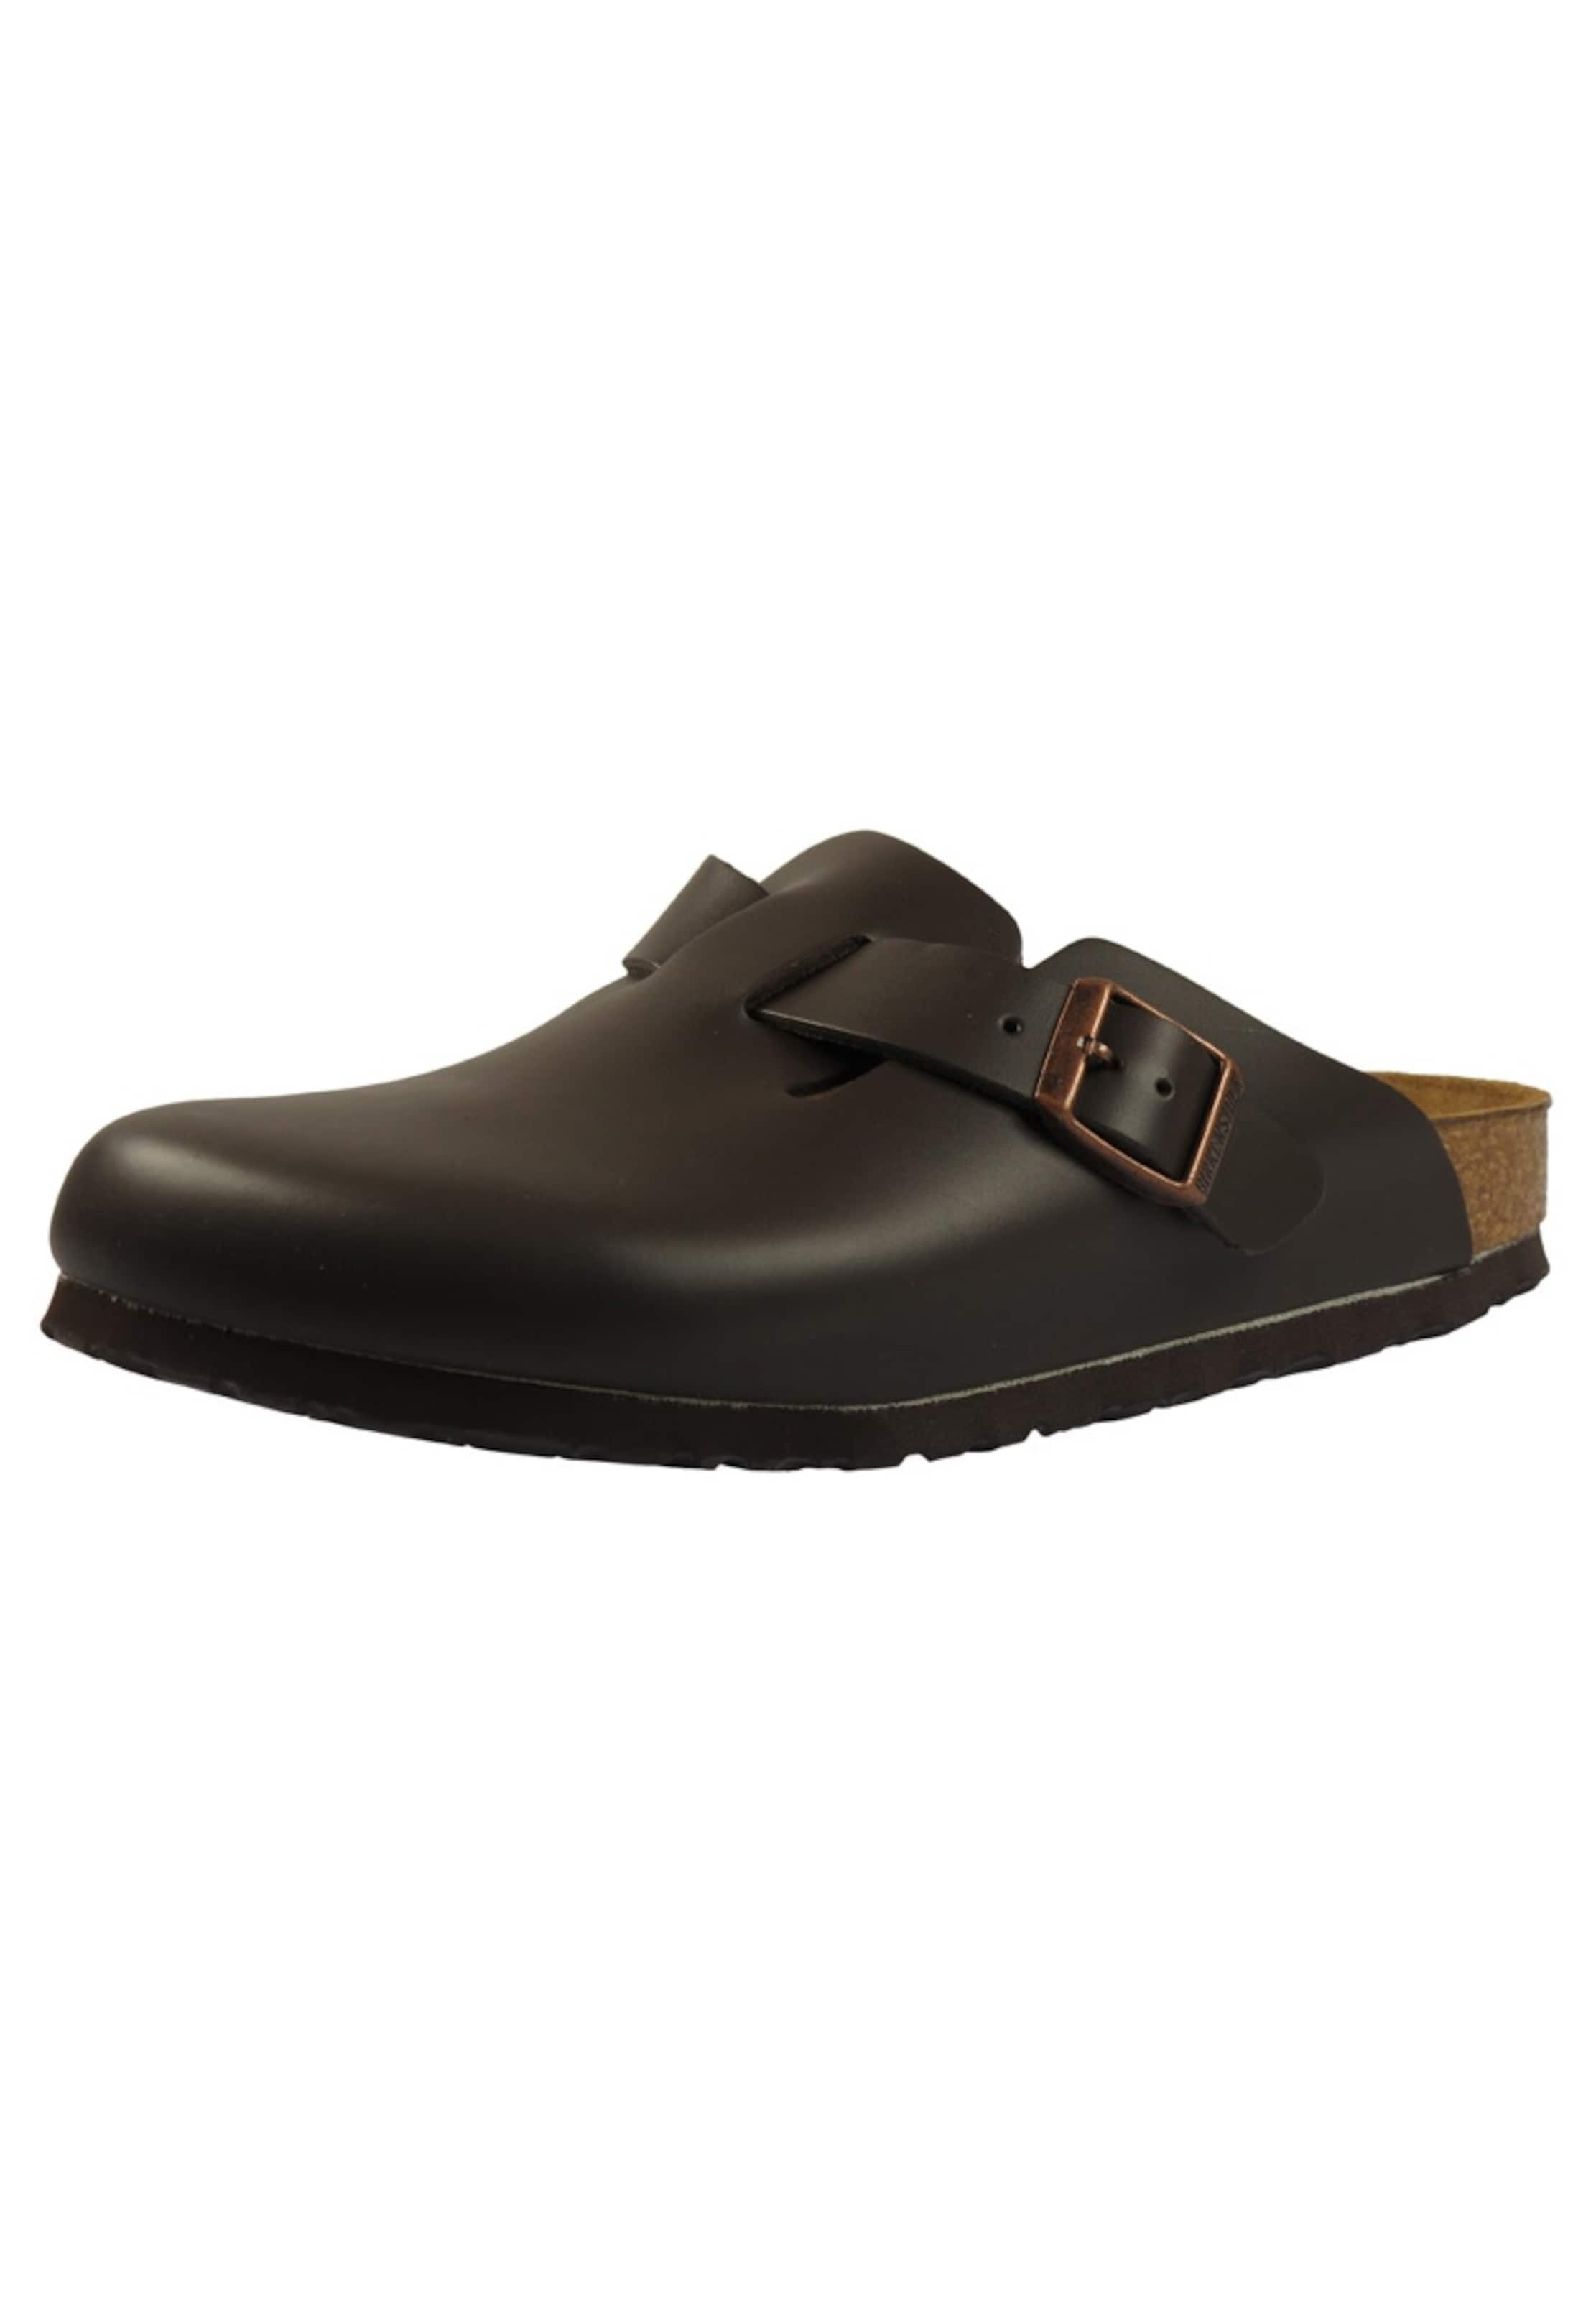 Clogs 'boston' Braun Birkenstock Birkenstock In Clogs DH2ebE9IYW